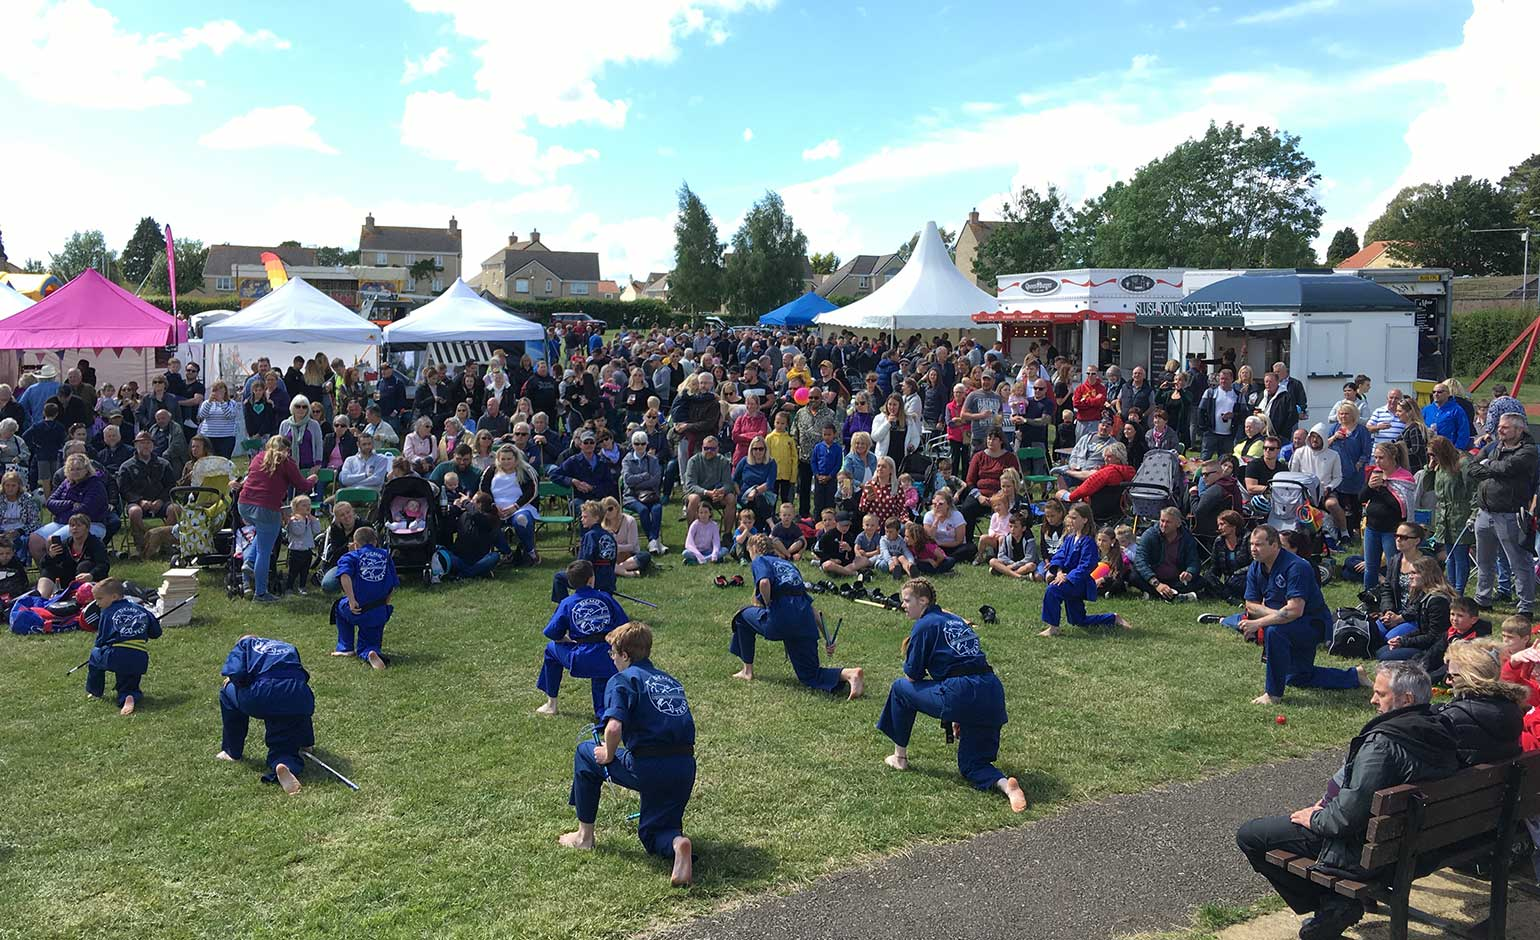 Over 2,000 people visit Peasedown's 11th annual Party in the Park festival | Bath Echo